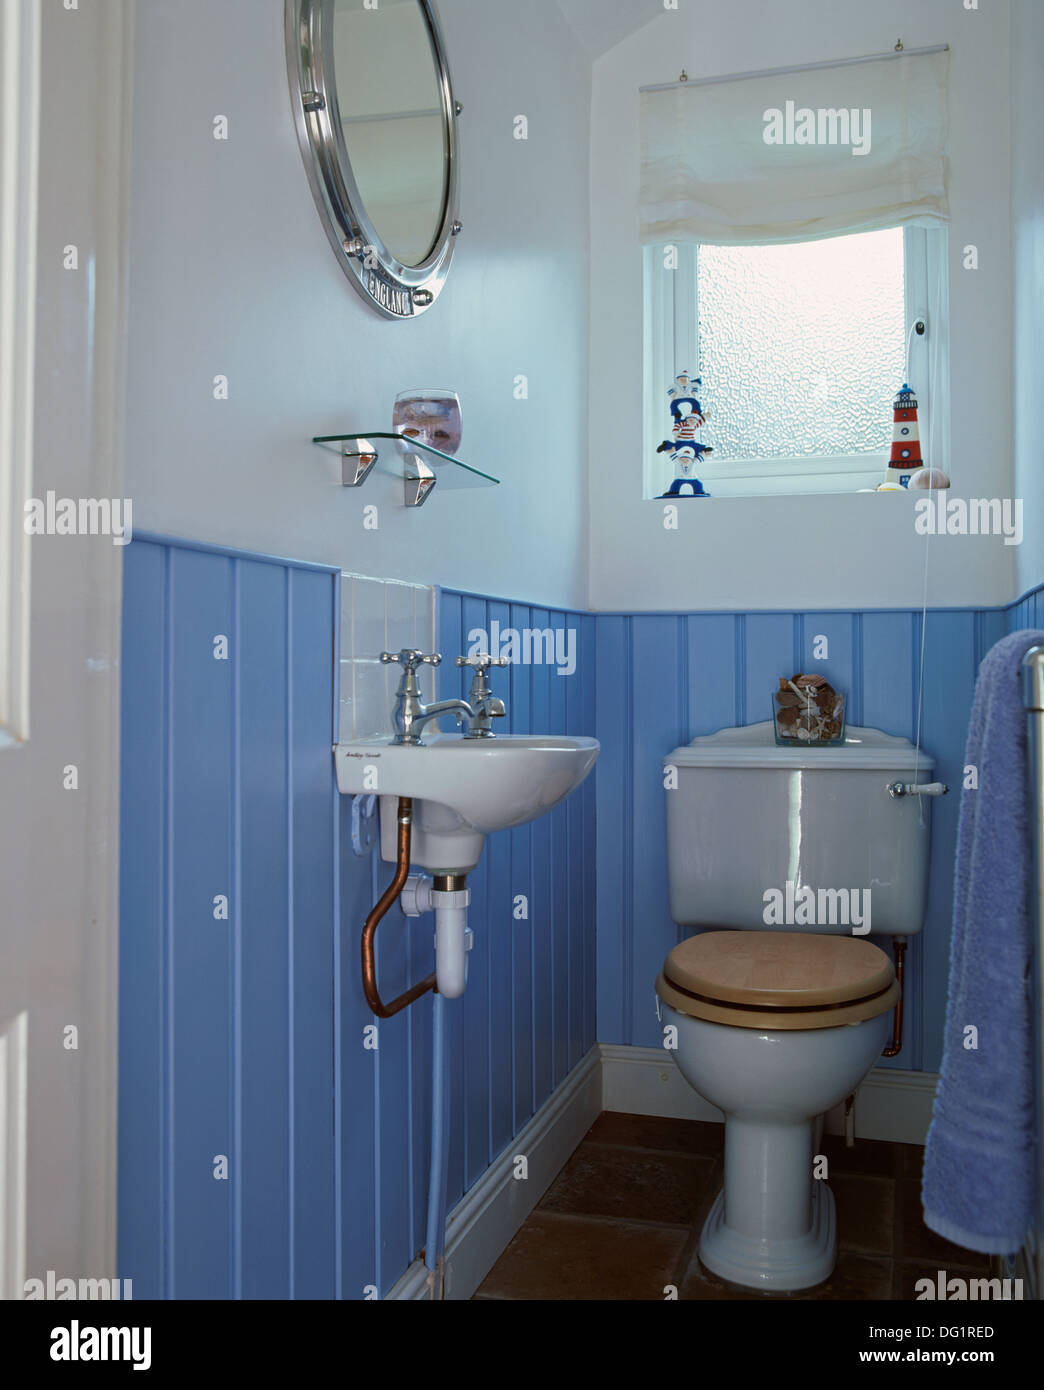 Blue tongue+groove panelling in toilet with small basin and toilet ...